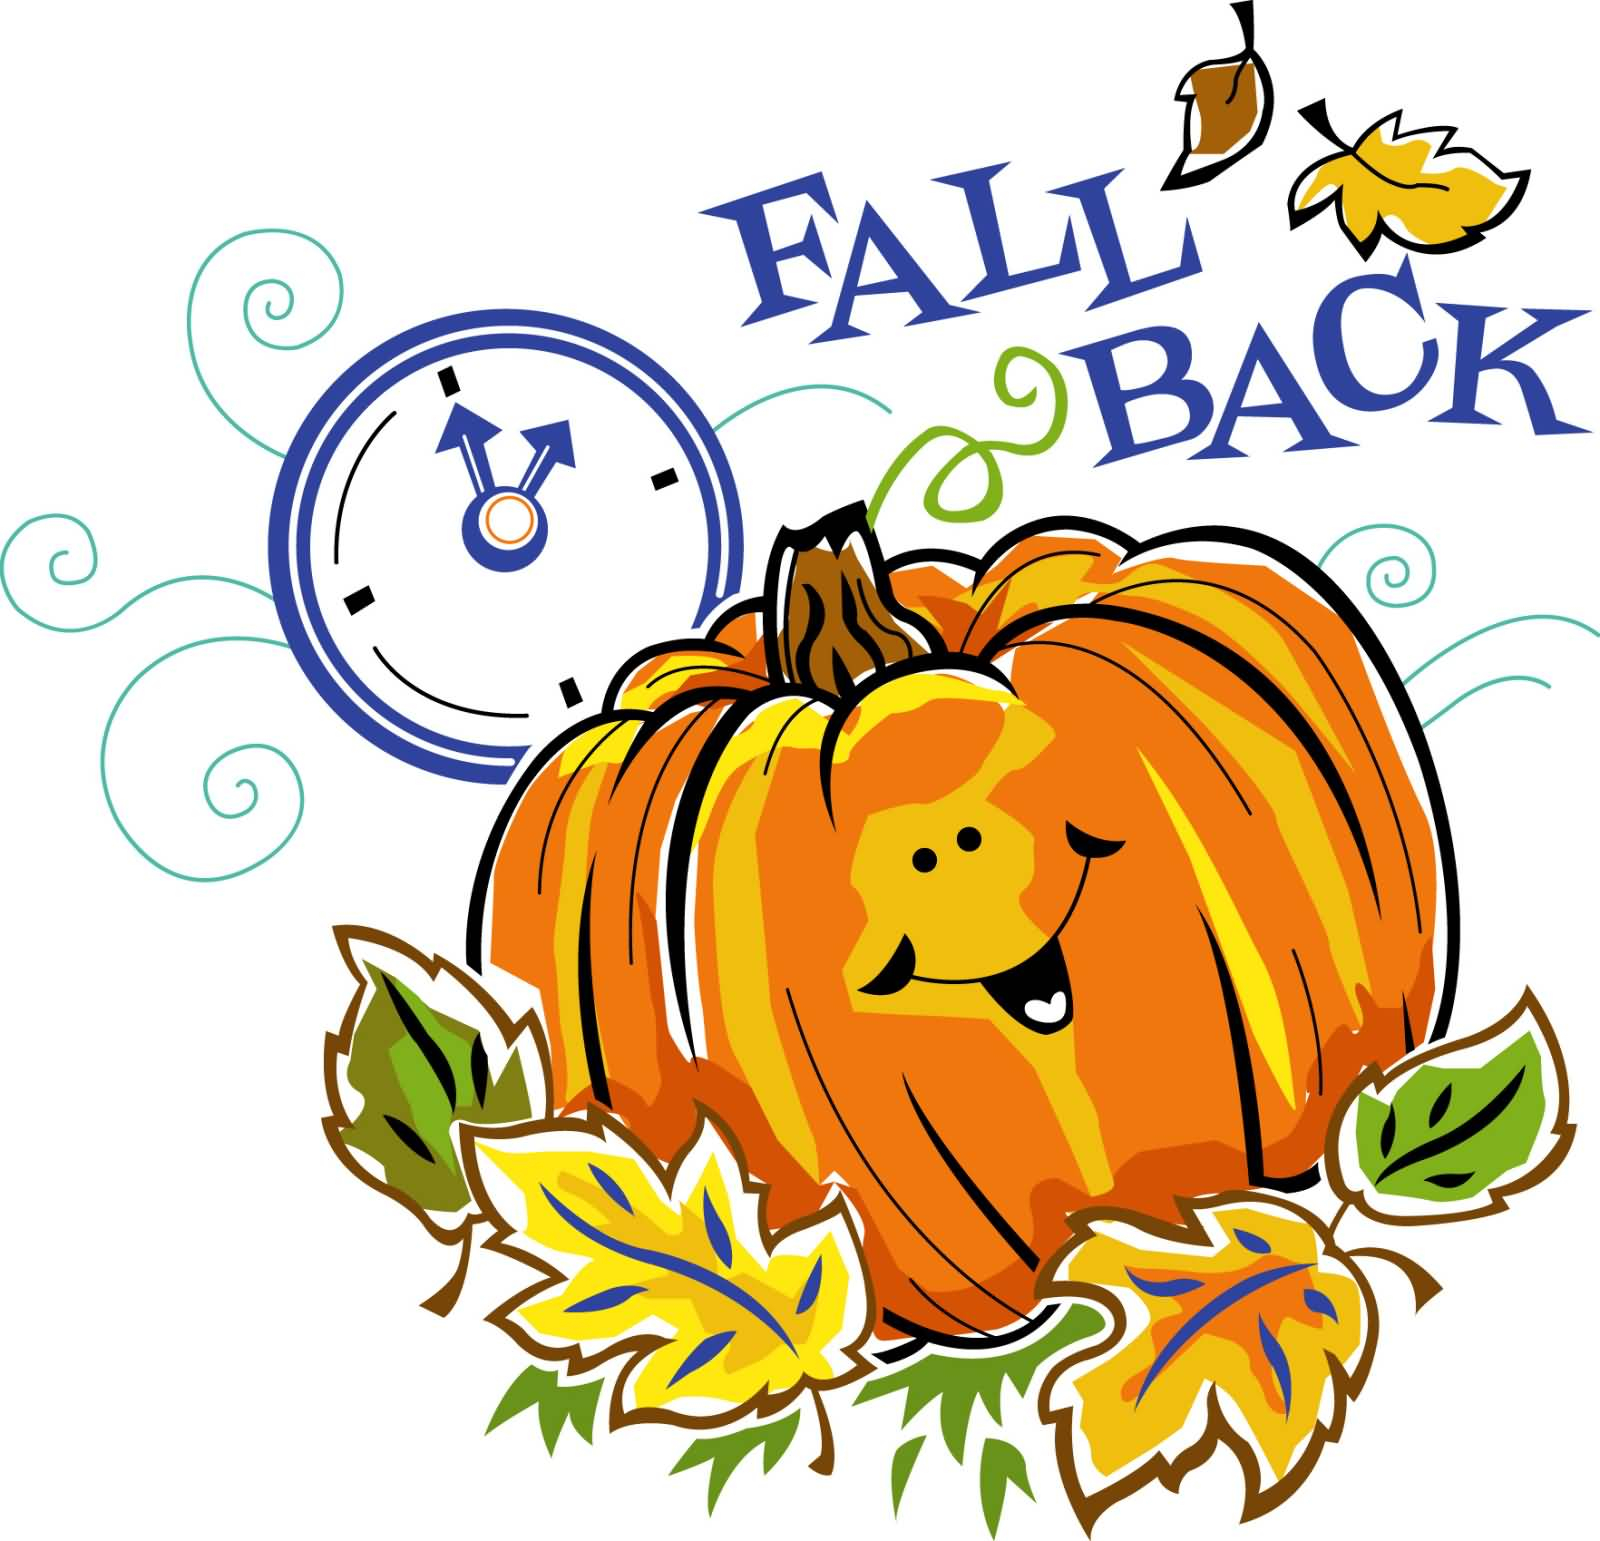 Clip Art Daylight Savings Time Clipart fall back daylight saving time ends pumpkin clipart